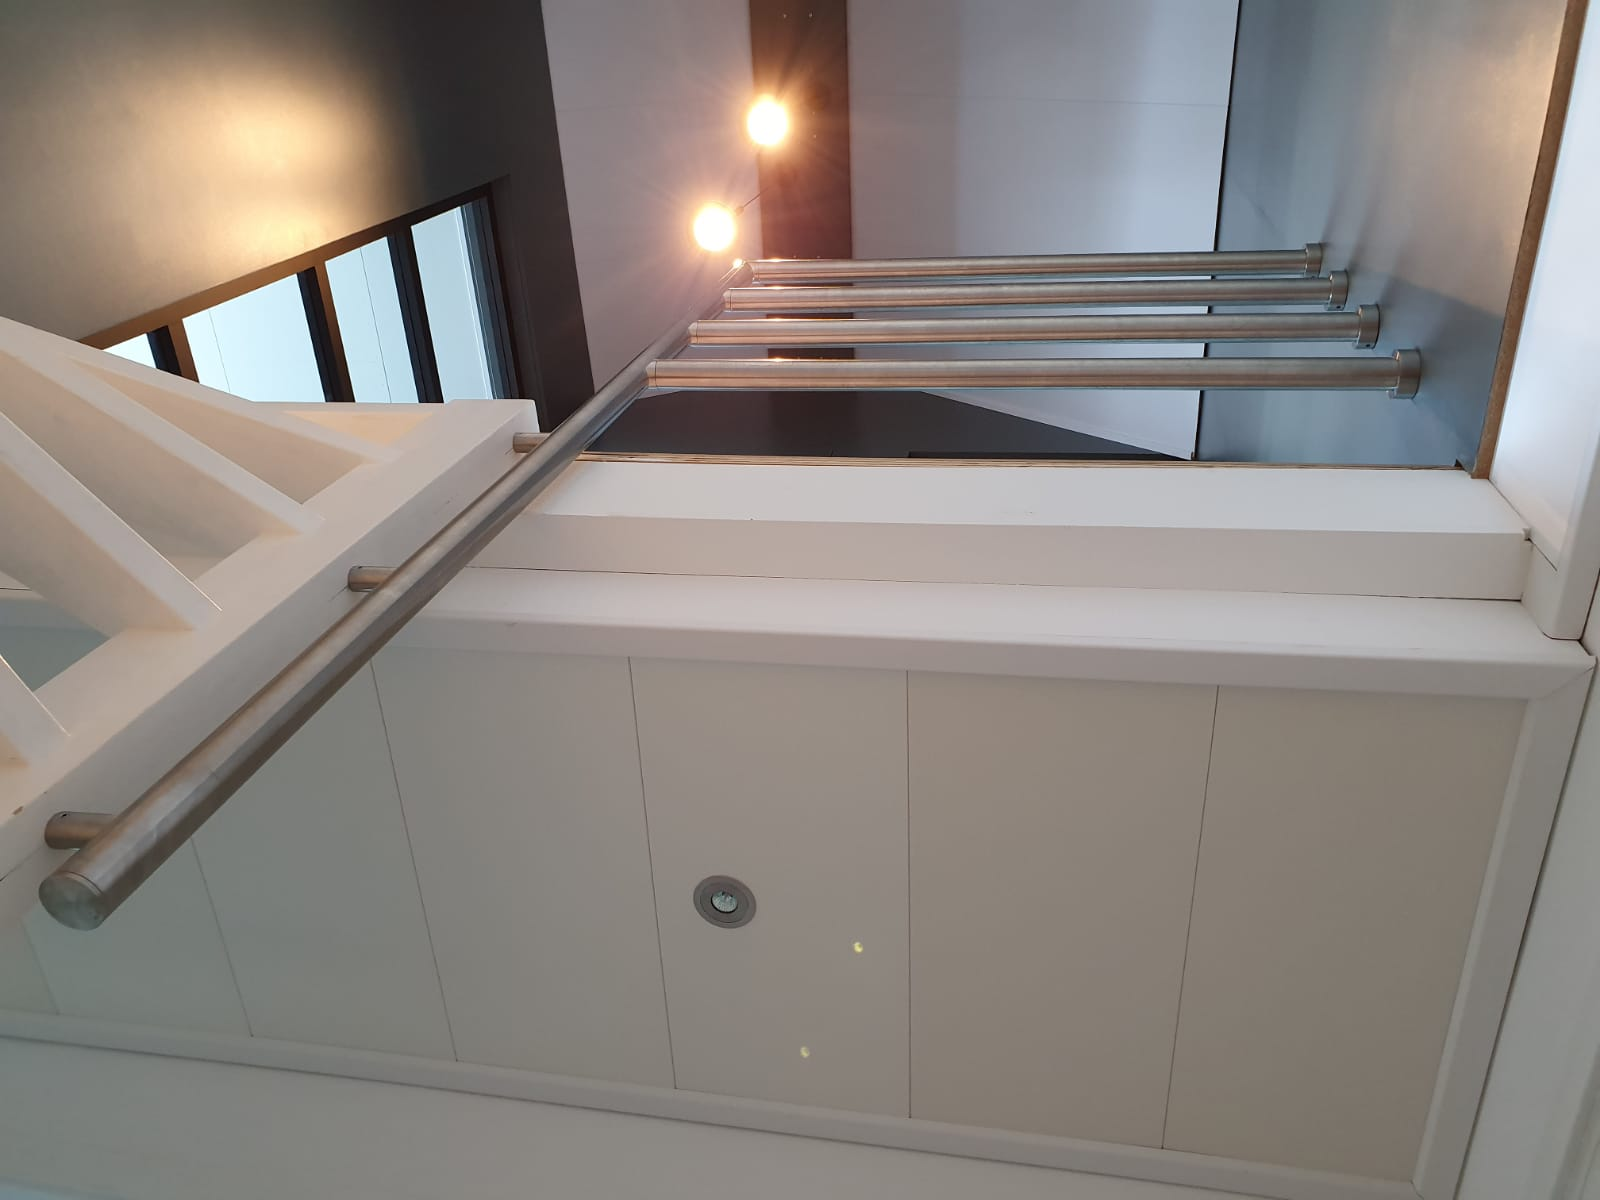 rvs balustrade trapgat